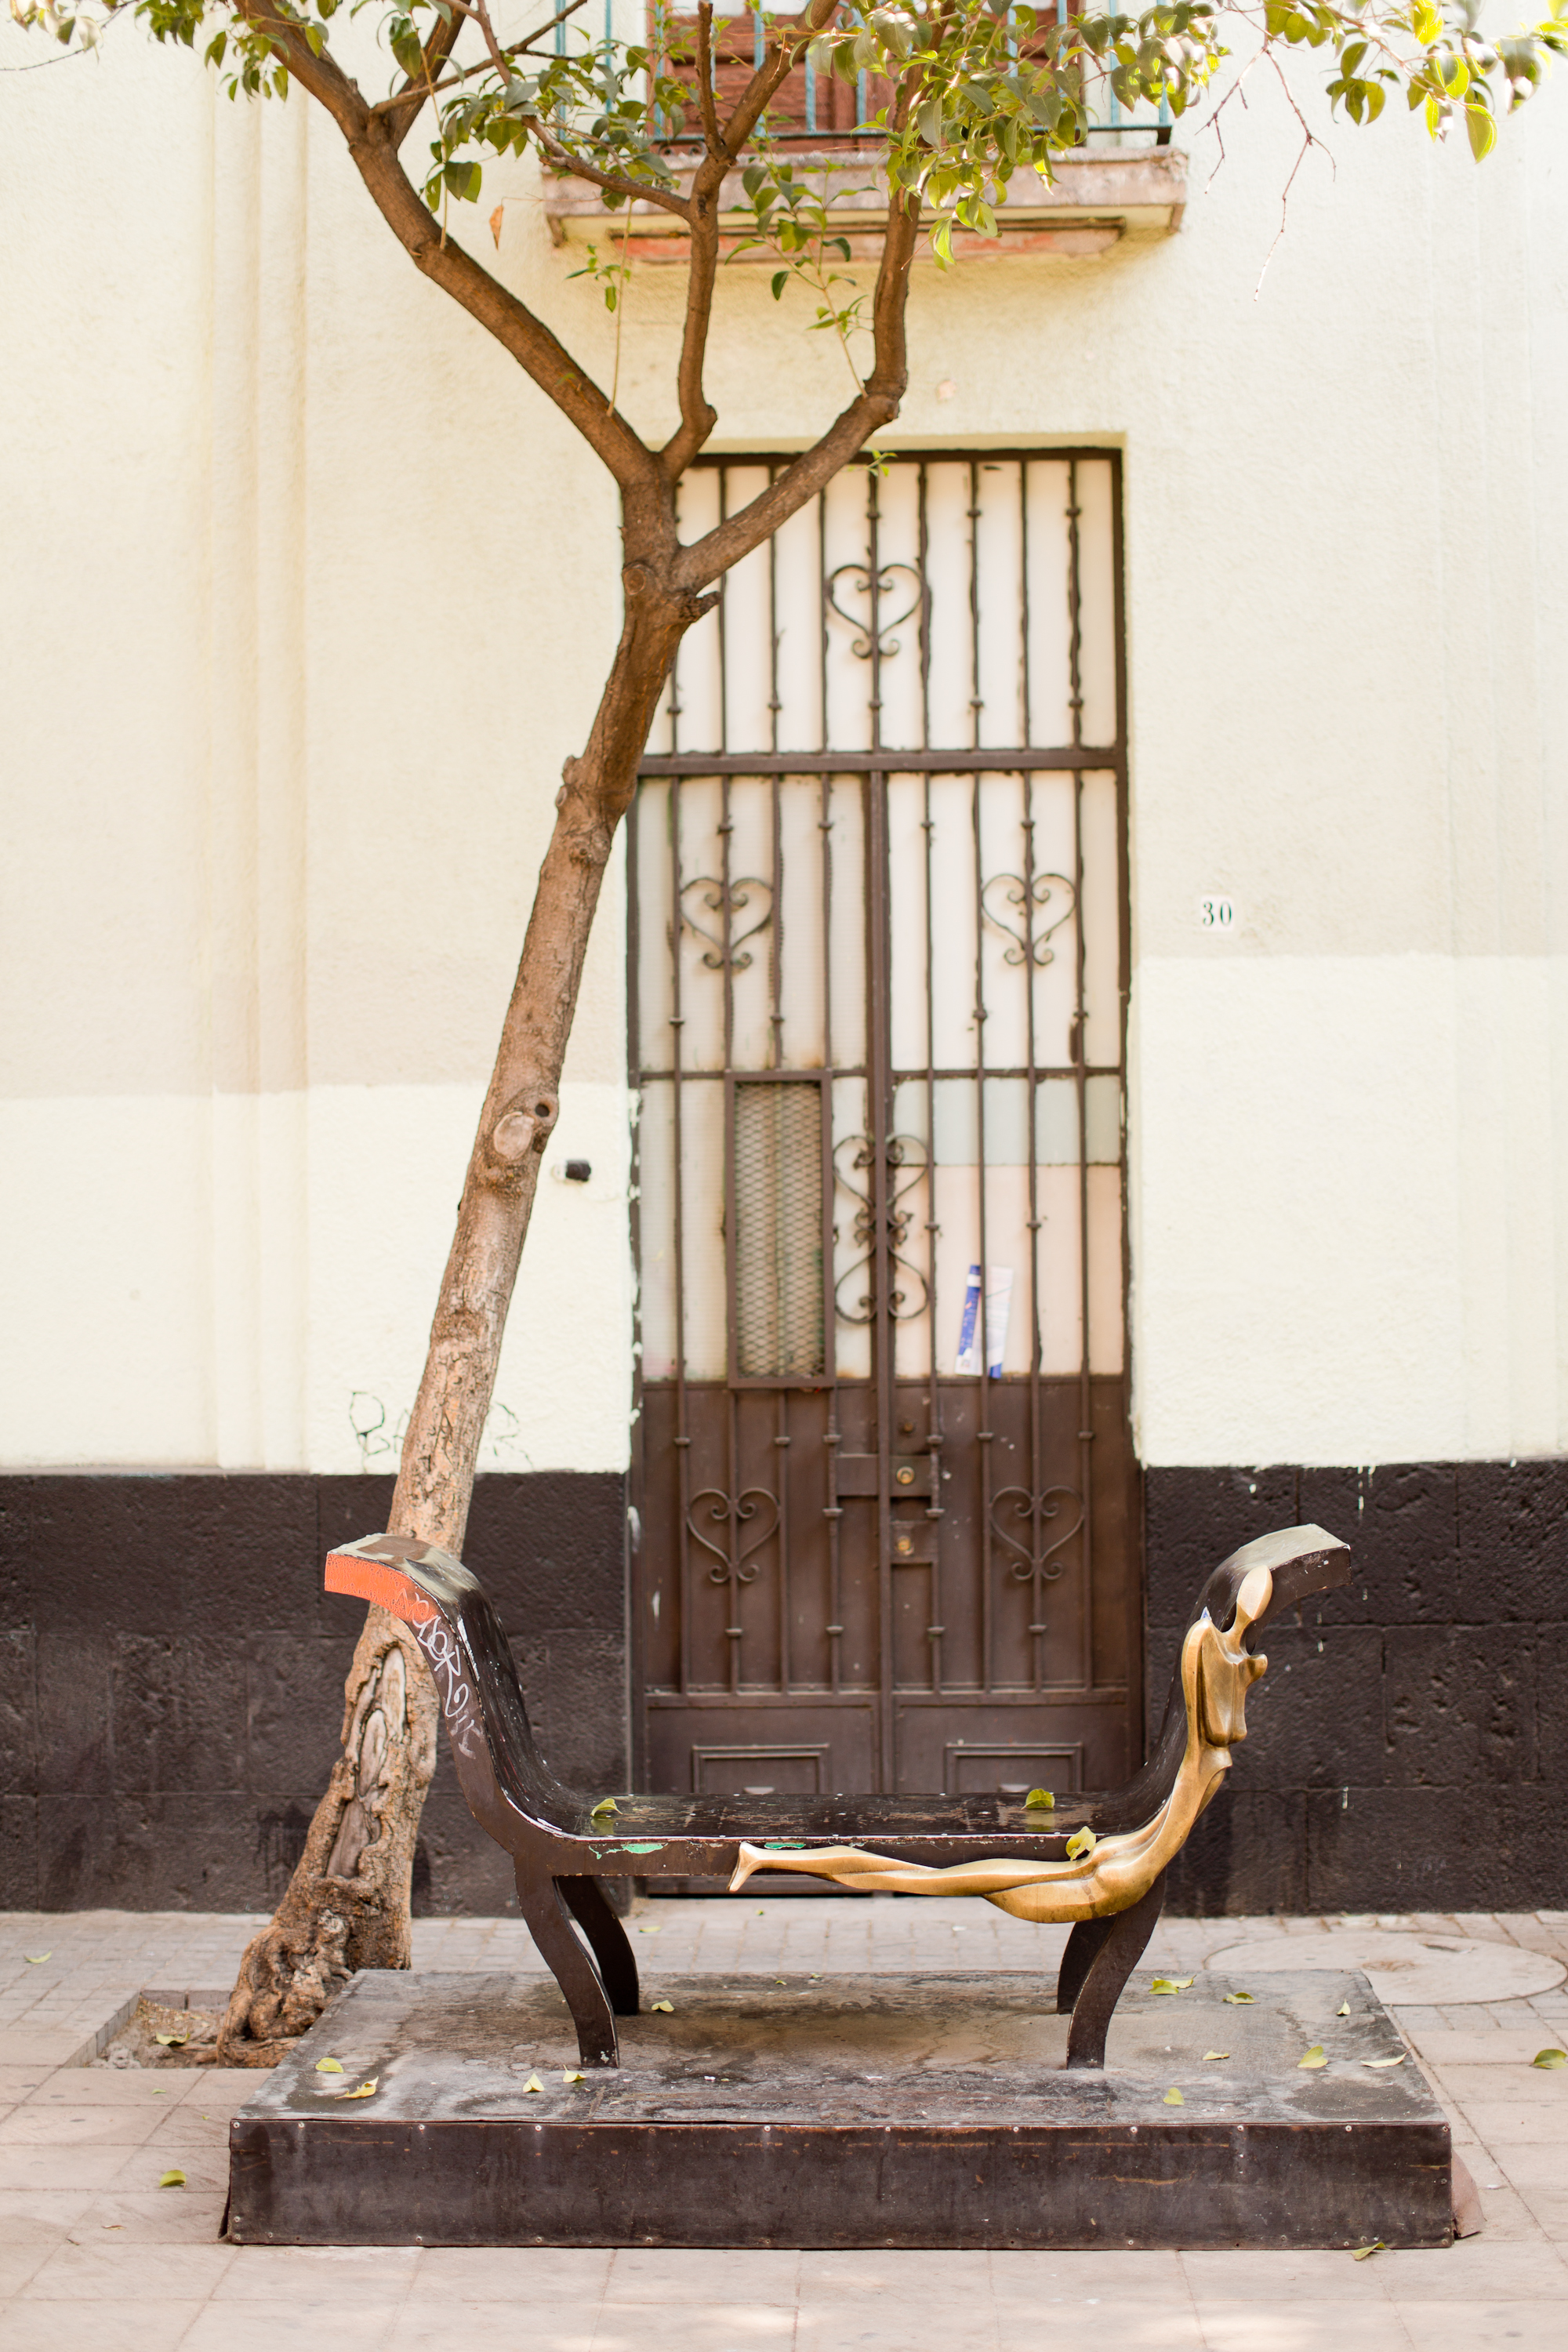 Melissa Kruse Photography - Mexico City (web)-103.jpg